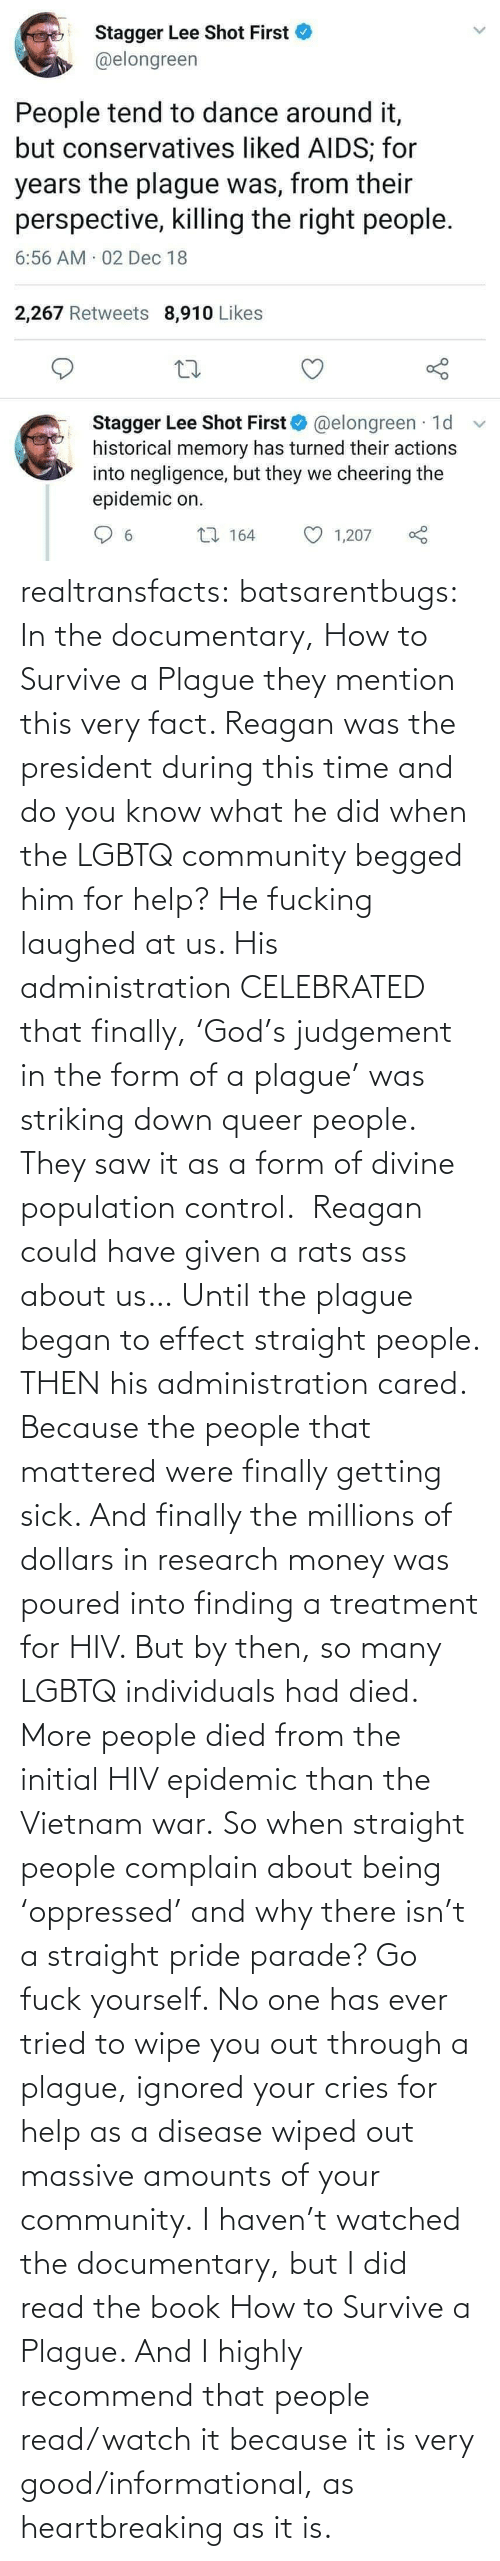 Finding: Stagger Lee Shot First  @elongreen  People tend to dance around it,  but conservatives liked AIDS; for  years the plague was, from their  perspective, killing the right people.  6:56 AM 02 Dec 18  2,267 Retweets 8,910 Likes  Stagger Lee Shot First O @elongreen · 1d  historical memory has turned their actions  into negligence, but they we cheering the  epidemic on.  27 164  1,207  6. realtransfacts:  batsarentbugs:  In the documentary, How to Survive a Plague they mention this very fact. Reagan was the president during this time and do you know what he did when the LGBTQ community begged him for help? He fucking laughed at us. His administration CELEBRATED that finally, 'God's judgement in the form of a plague' was striking down queer people.  They saw it as a form of divine population control.  Reagan could have given a rats ass about us… Until the plague began to effect straight people. THEN his administration cared. Because the people that mattered were finally getting sick. And finally the millions of dollars in research money was poured into finding a treatment for HIV. But by then, so many LGBTQ individuals had died.  More people died from the initial HIV epidemic than the Vietnam war. So when straight people complain about being 'oppressed' and why there isn't a straight pride parade? Go fuck yourself. No one has ever tried to wipe you out through a plague, ignored your cries for help as a disease wiped out massive amounts of your community.  I haven't watched the documentary, but I did read the book  How to Survive a Plague. And I highly recommend that people read/watch it because it is very good/informational, as heartbreaking as it is.